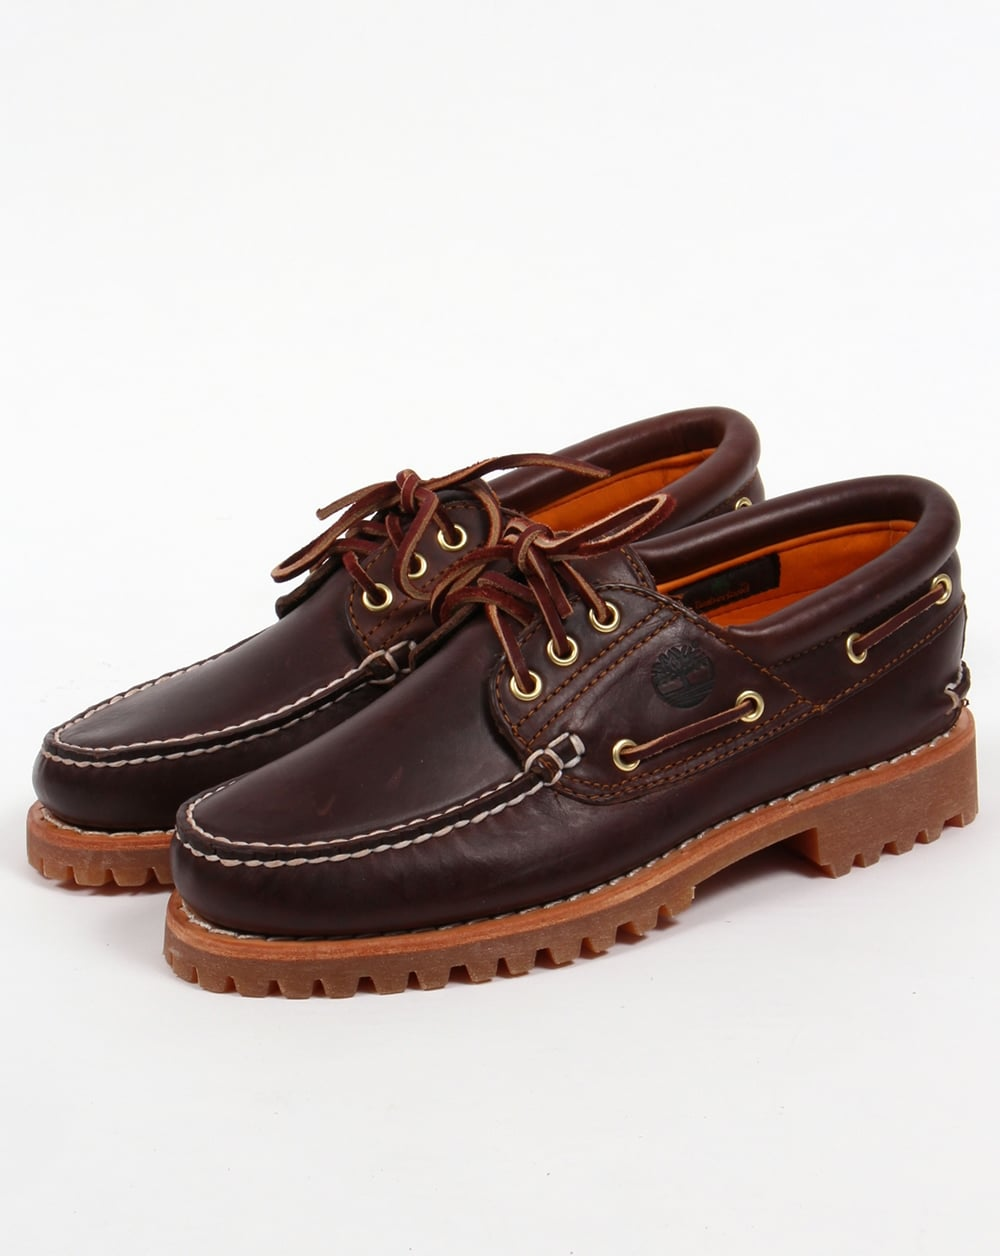 Timberland 3 eye classic lug shoes brown boots boat deck mens for Classic 3